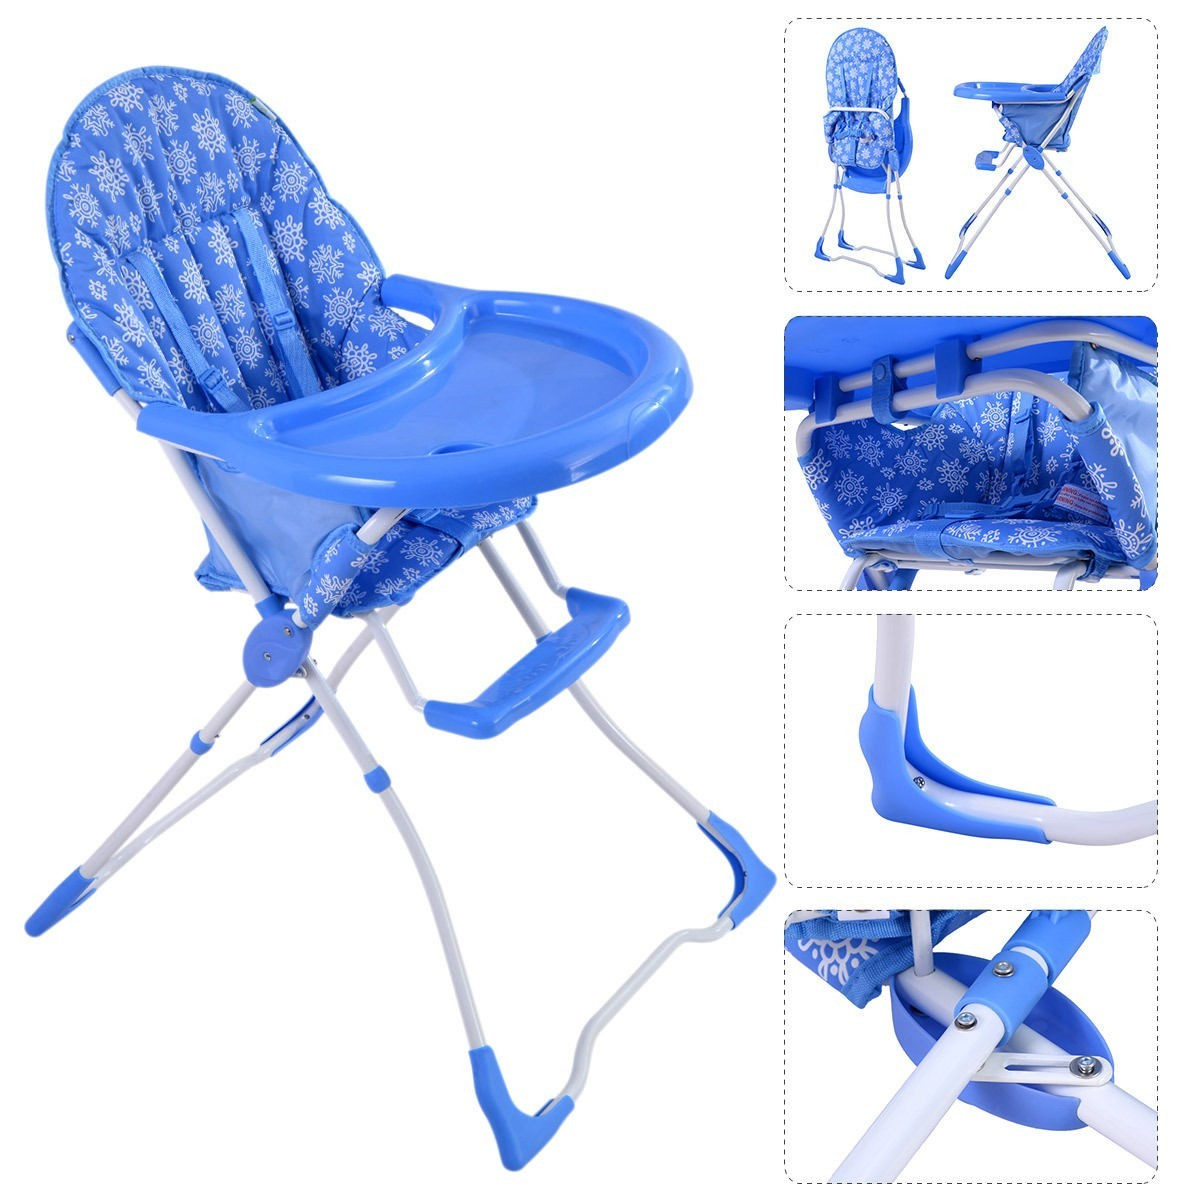 Baby High Chair Infant Toddler Feeding Booster Seat Folding Safe Portable - Blue